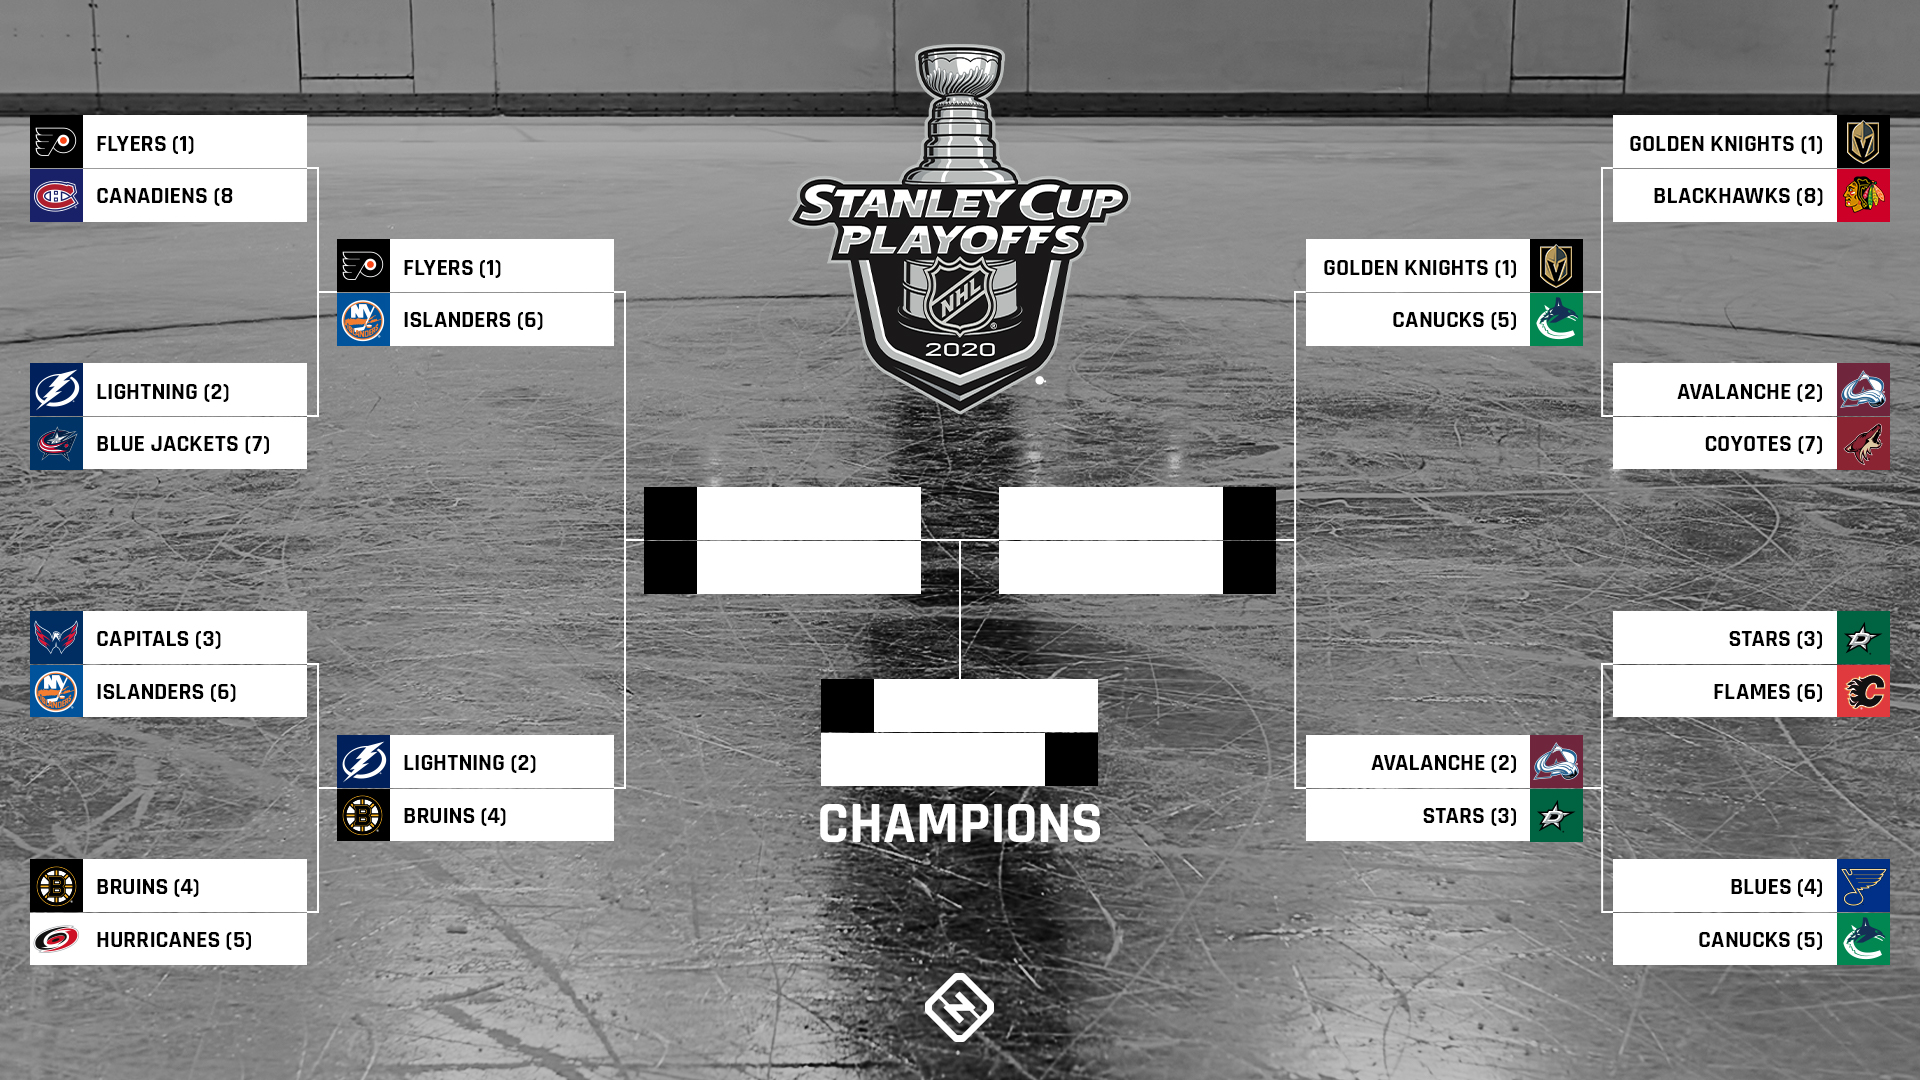 NHL playoff schedule 2020: Updated bracket, dates, times, TV channels for every Round 2 series